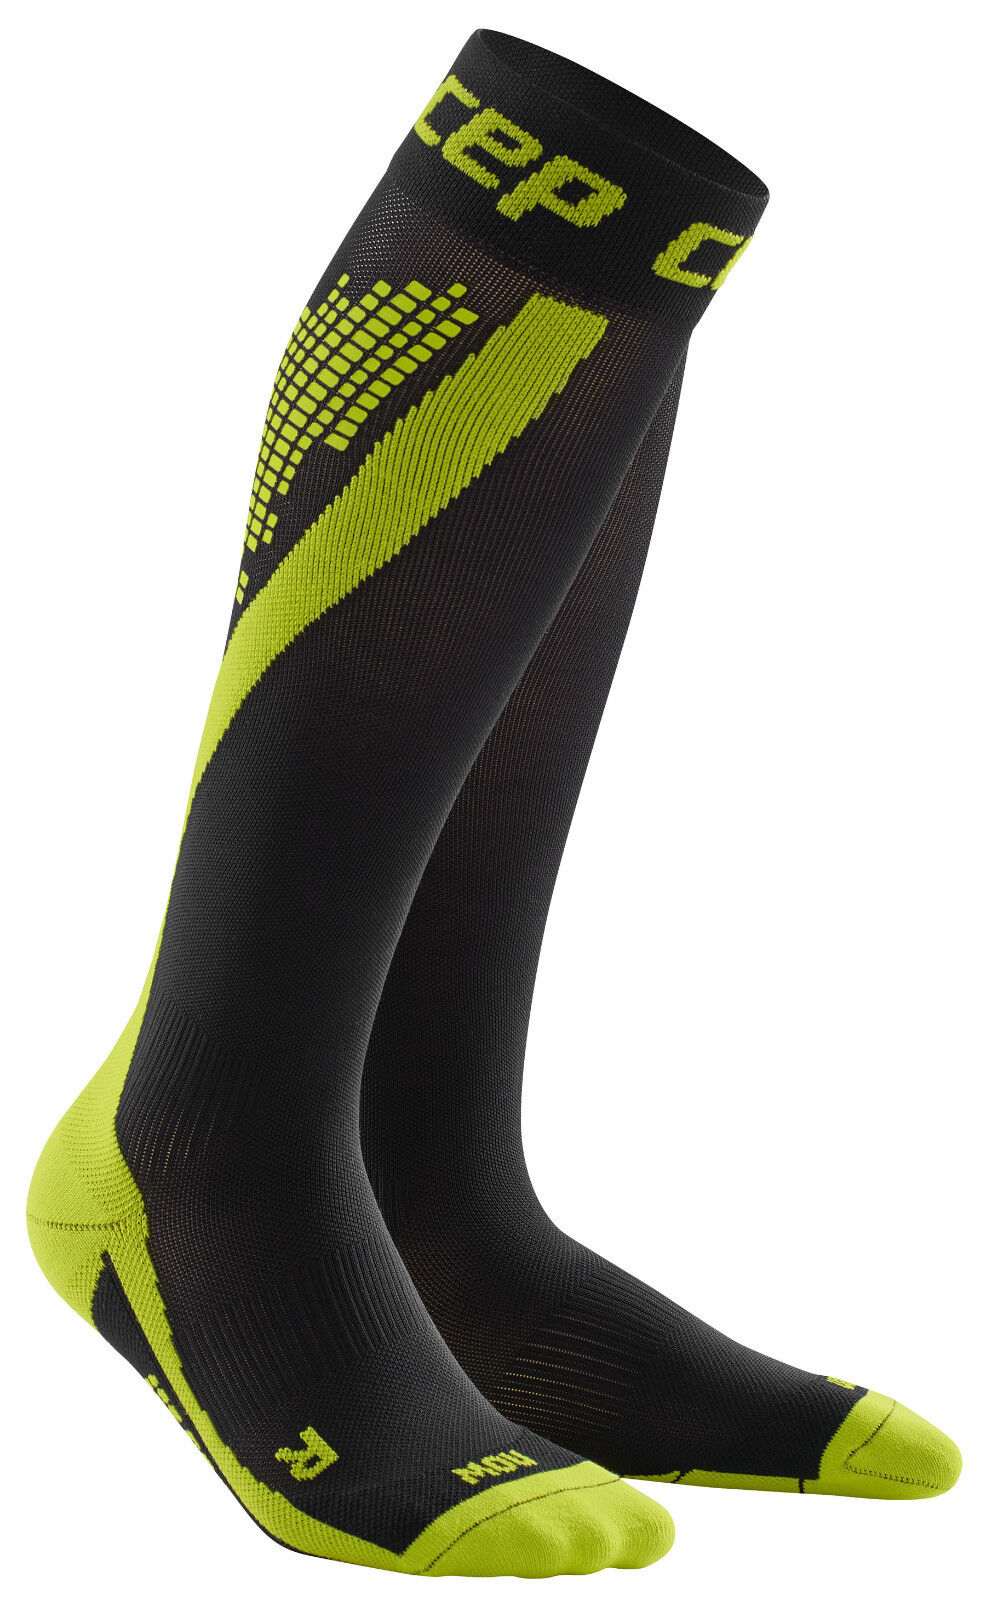 CEP nighttech Run Compression Socks Socks Socks Uomo wp5l3 574981